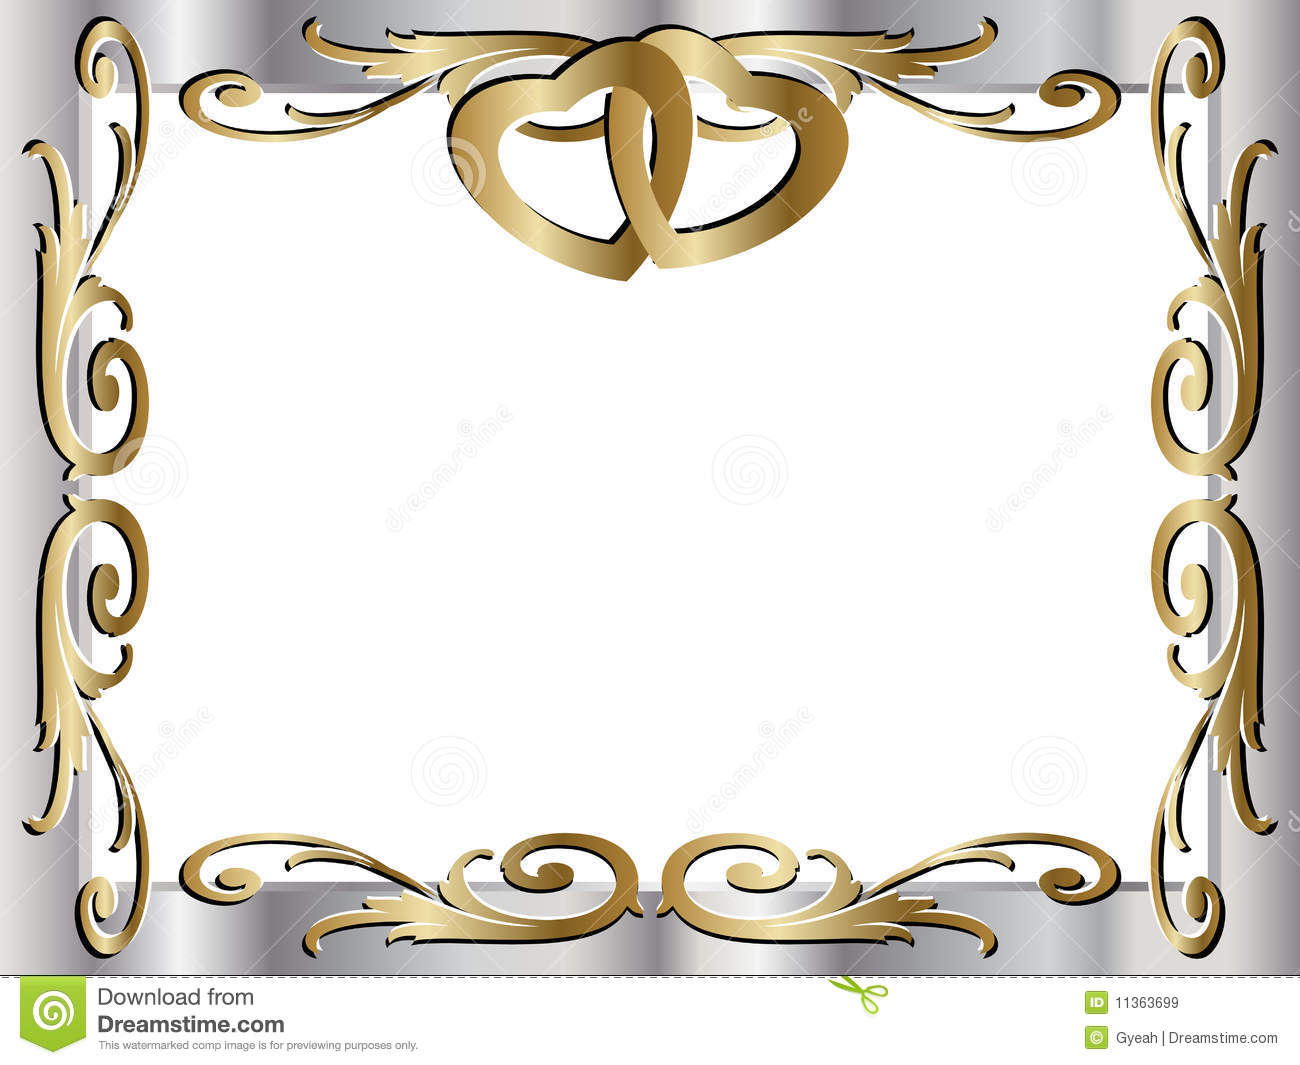 50th Or Golden Anniversary Of A Marriage Business Vector Available